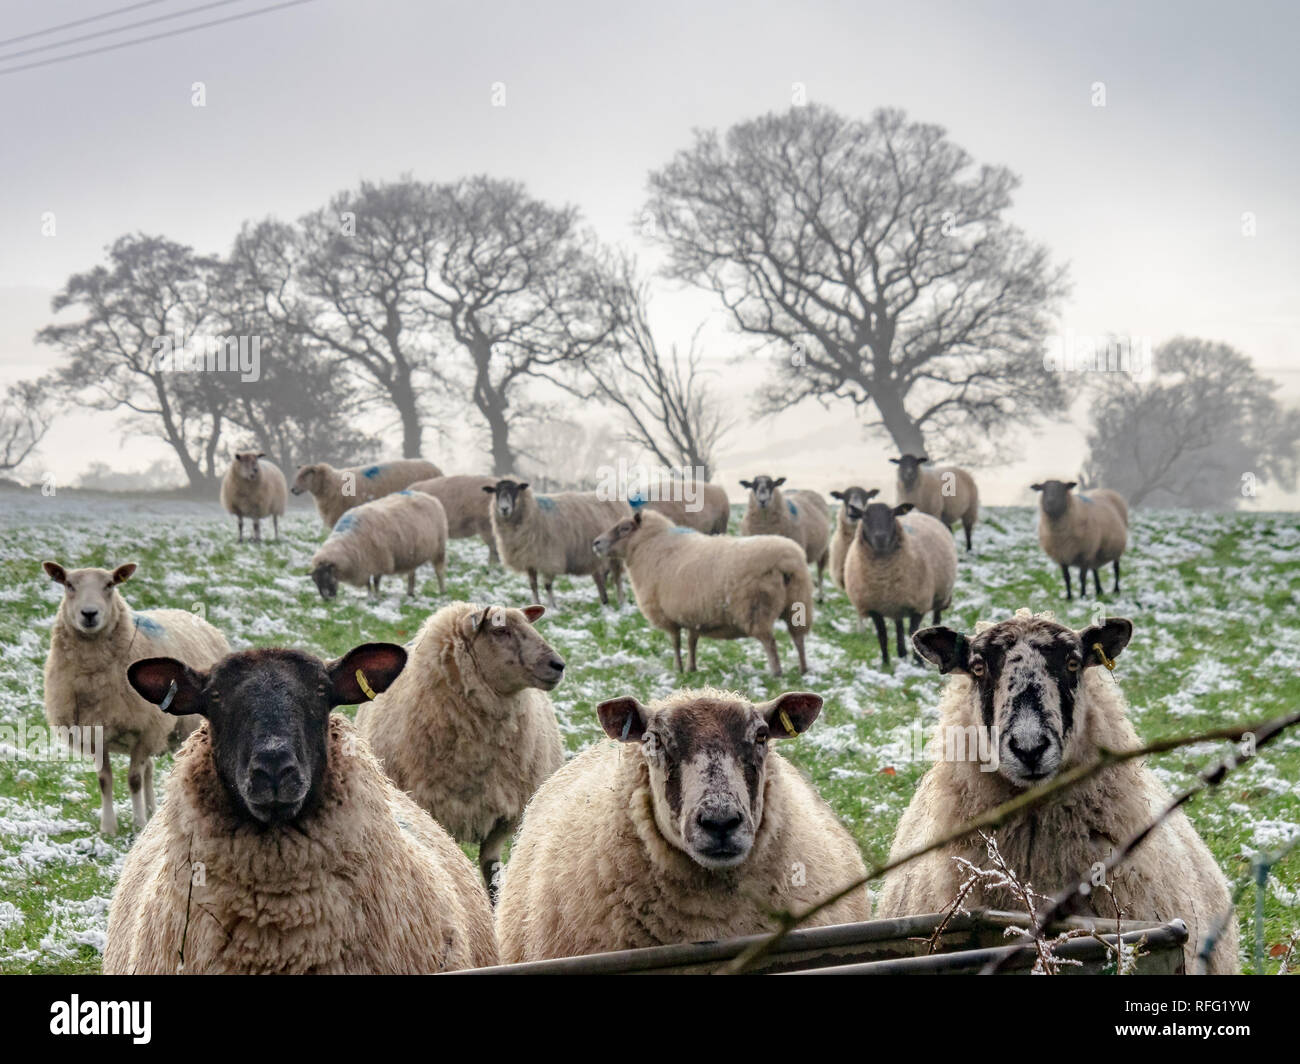 Sheep lined up for a photograph (feeding), Staffordshire Moorlands, UK - Stock Image